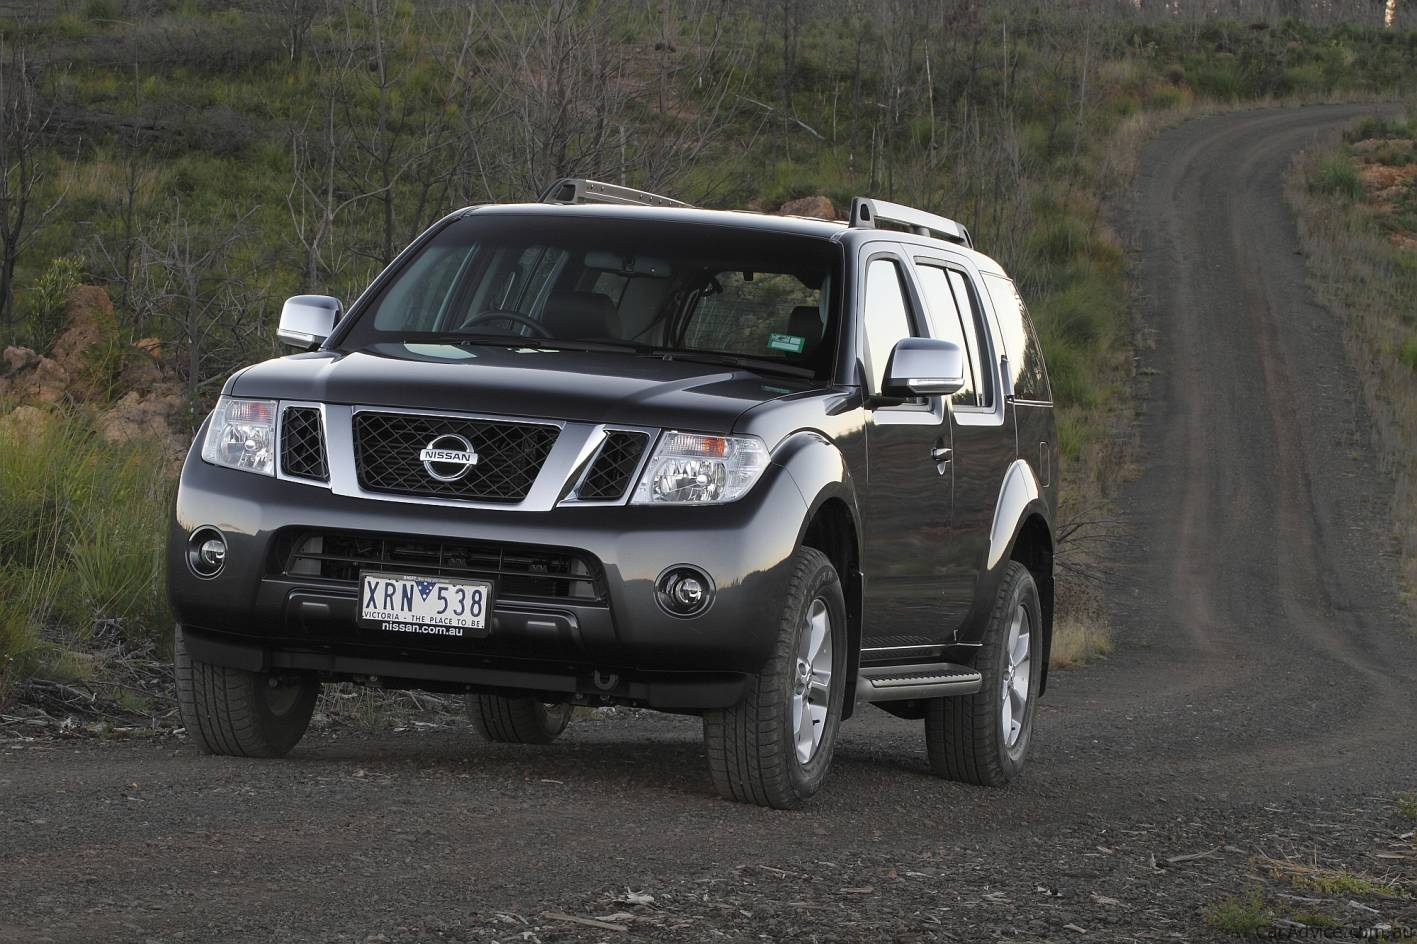 2010 nissan pathfinder range revised photos 1 of 10. Black Bedroom Furniture Sets. Home Design Ideas